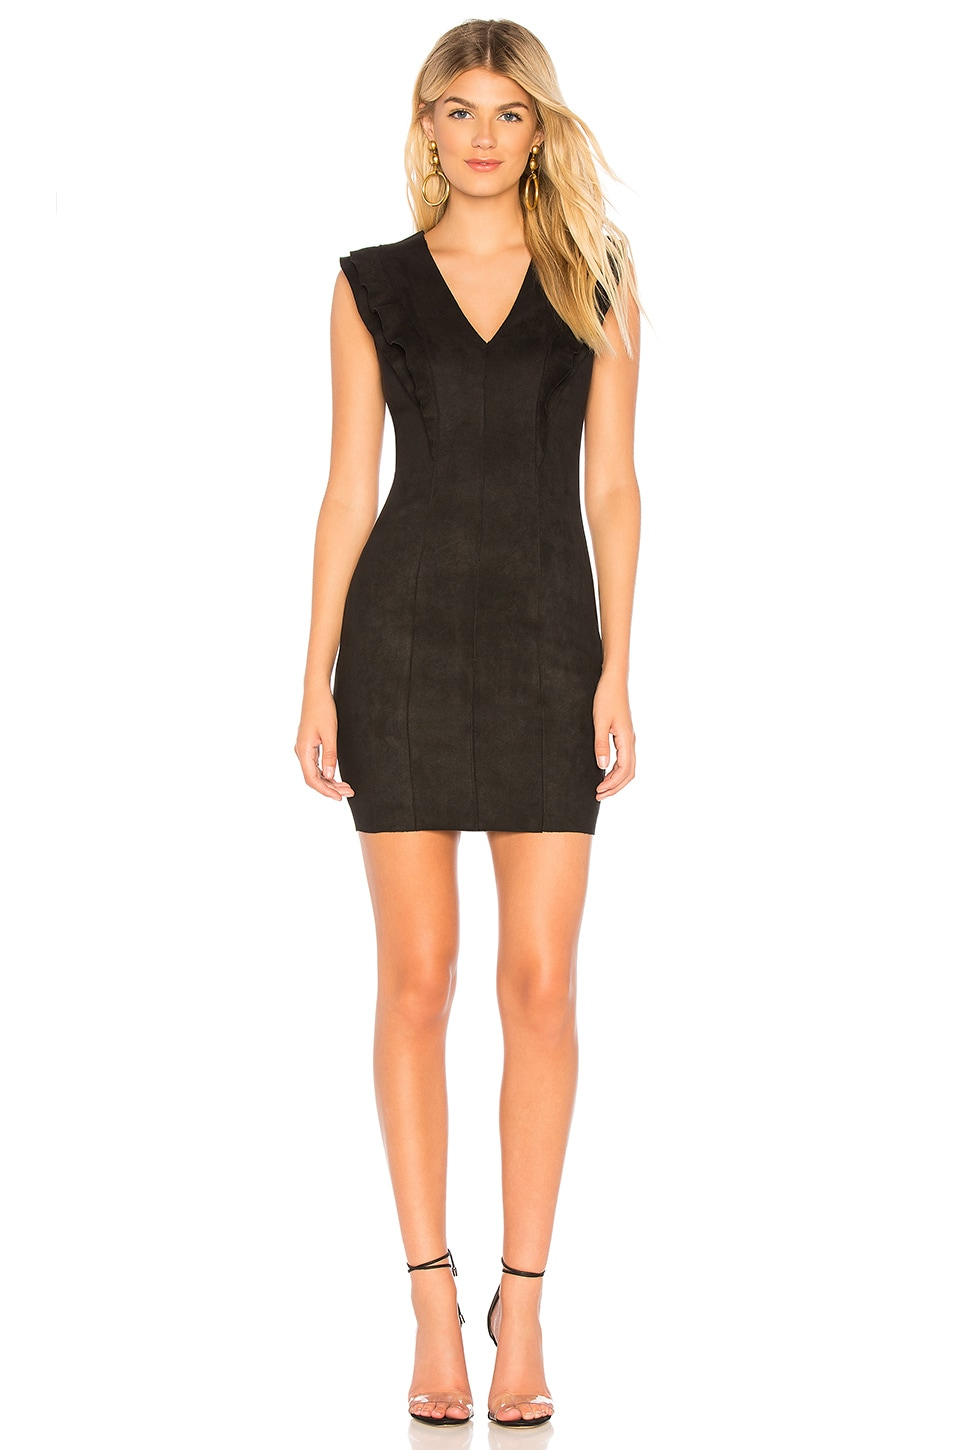 Glade Skiing Suede Dress